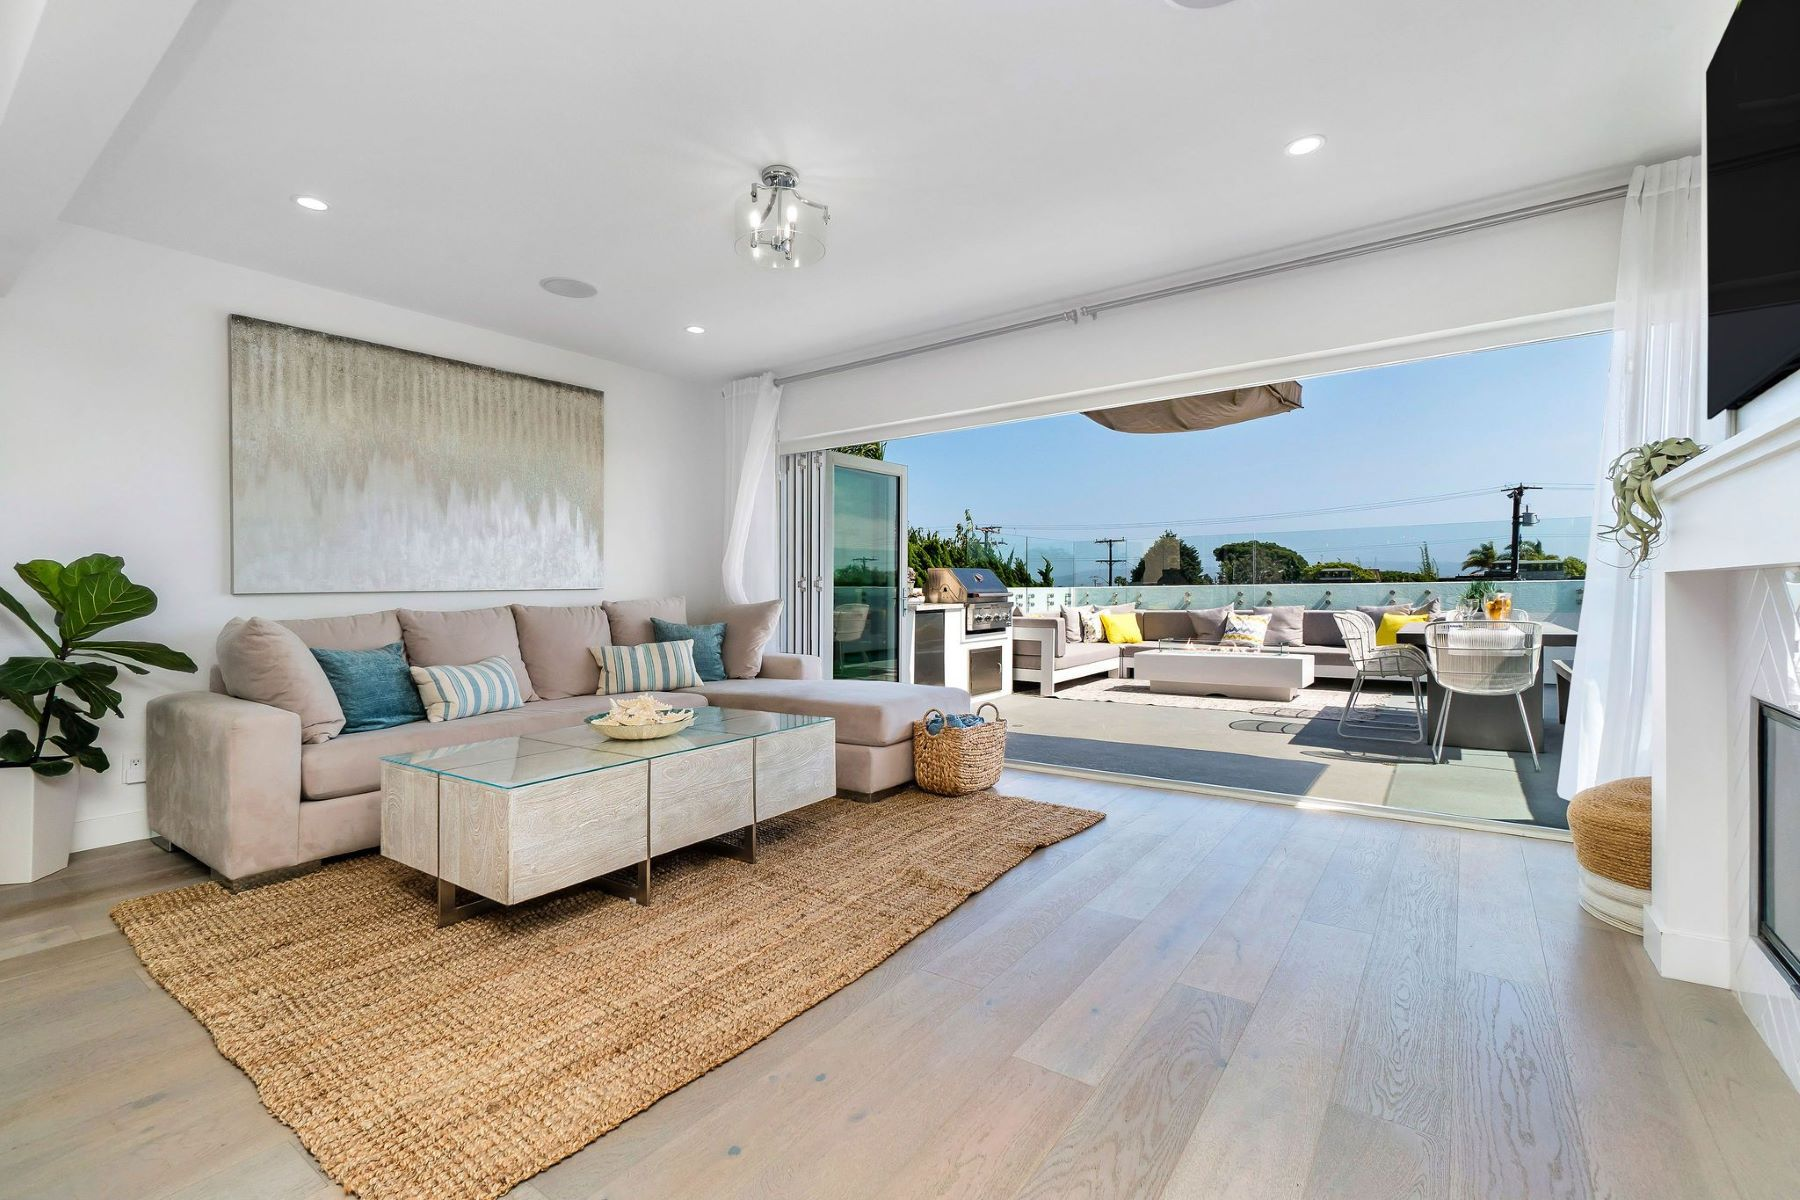 Single Family Homes for Sale at 728 Longfellow Avenue, Hermosa Beach, CA 90254 728 Longfellow Avenue Hermosa Beach, California 90254 United States